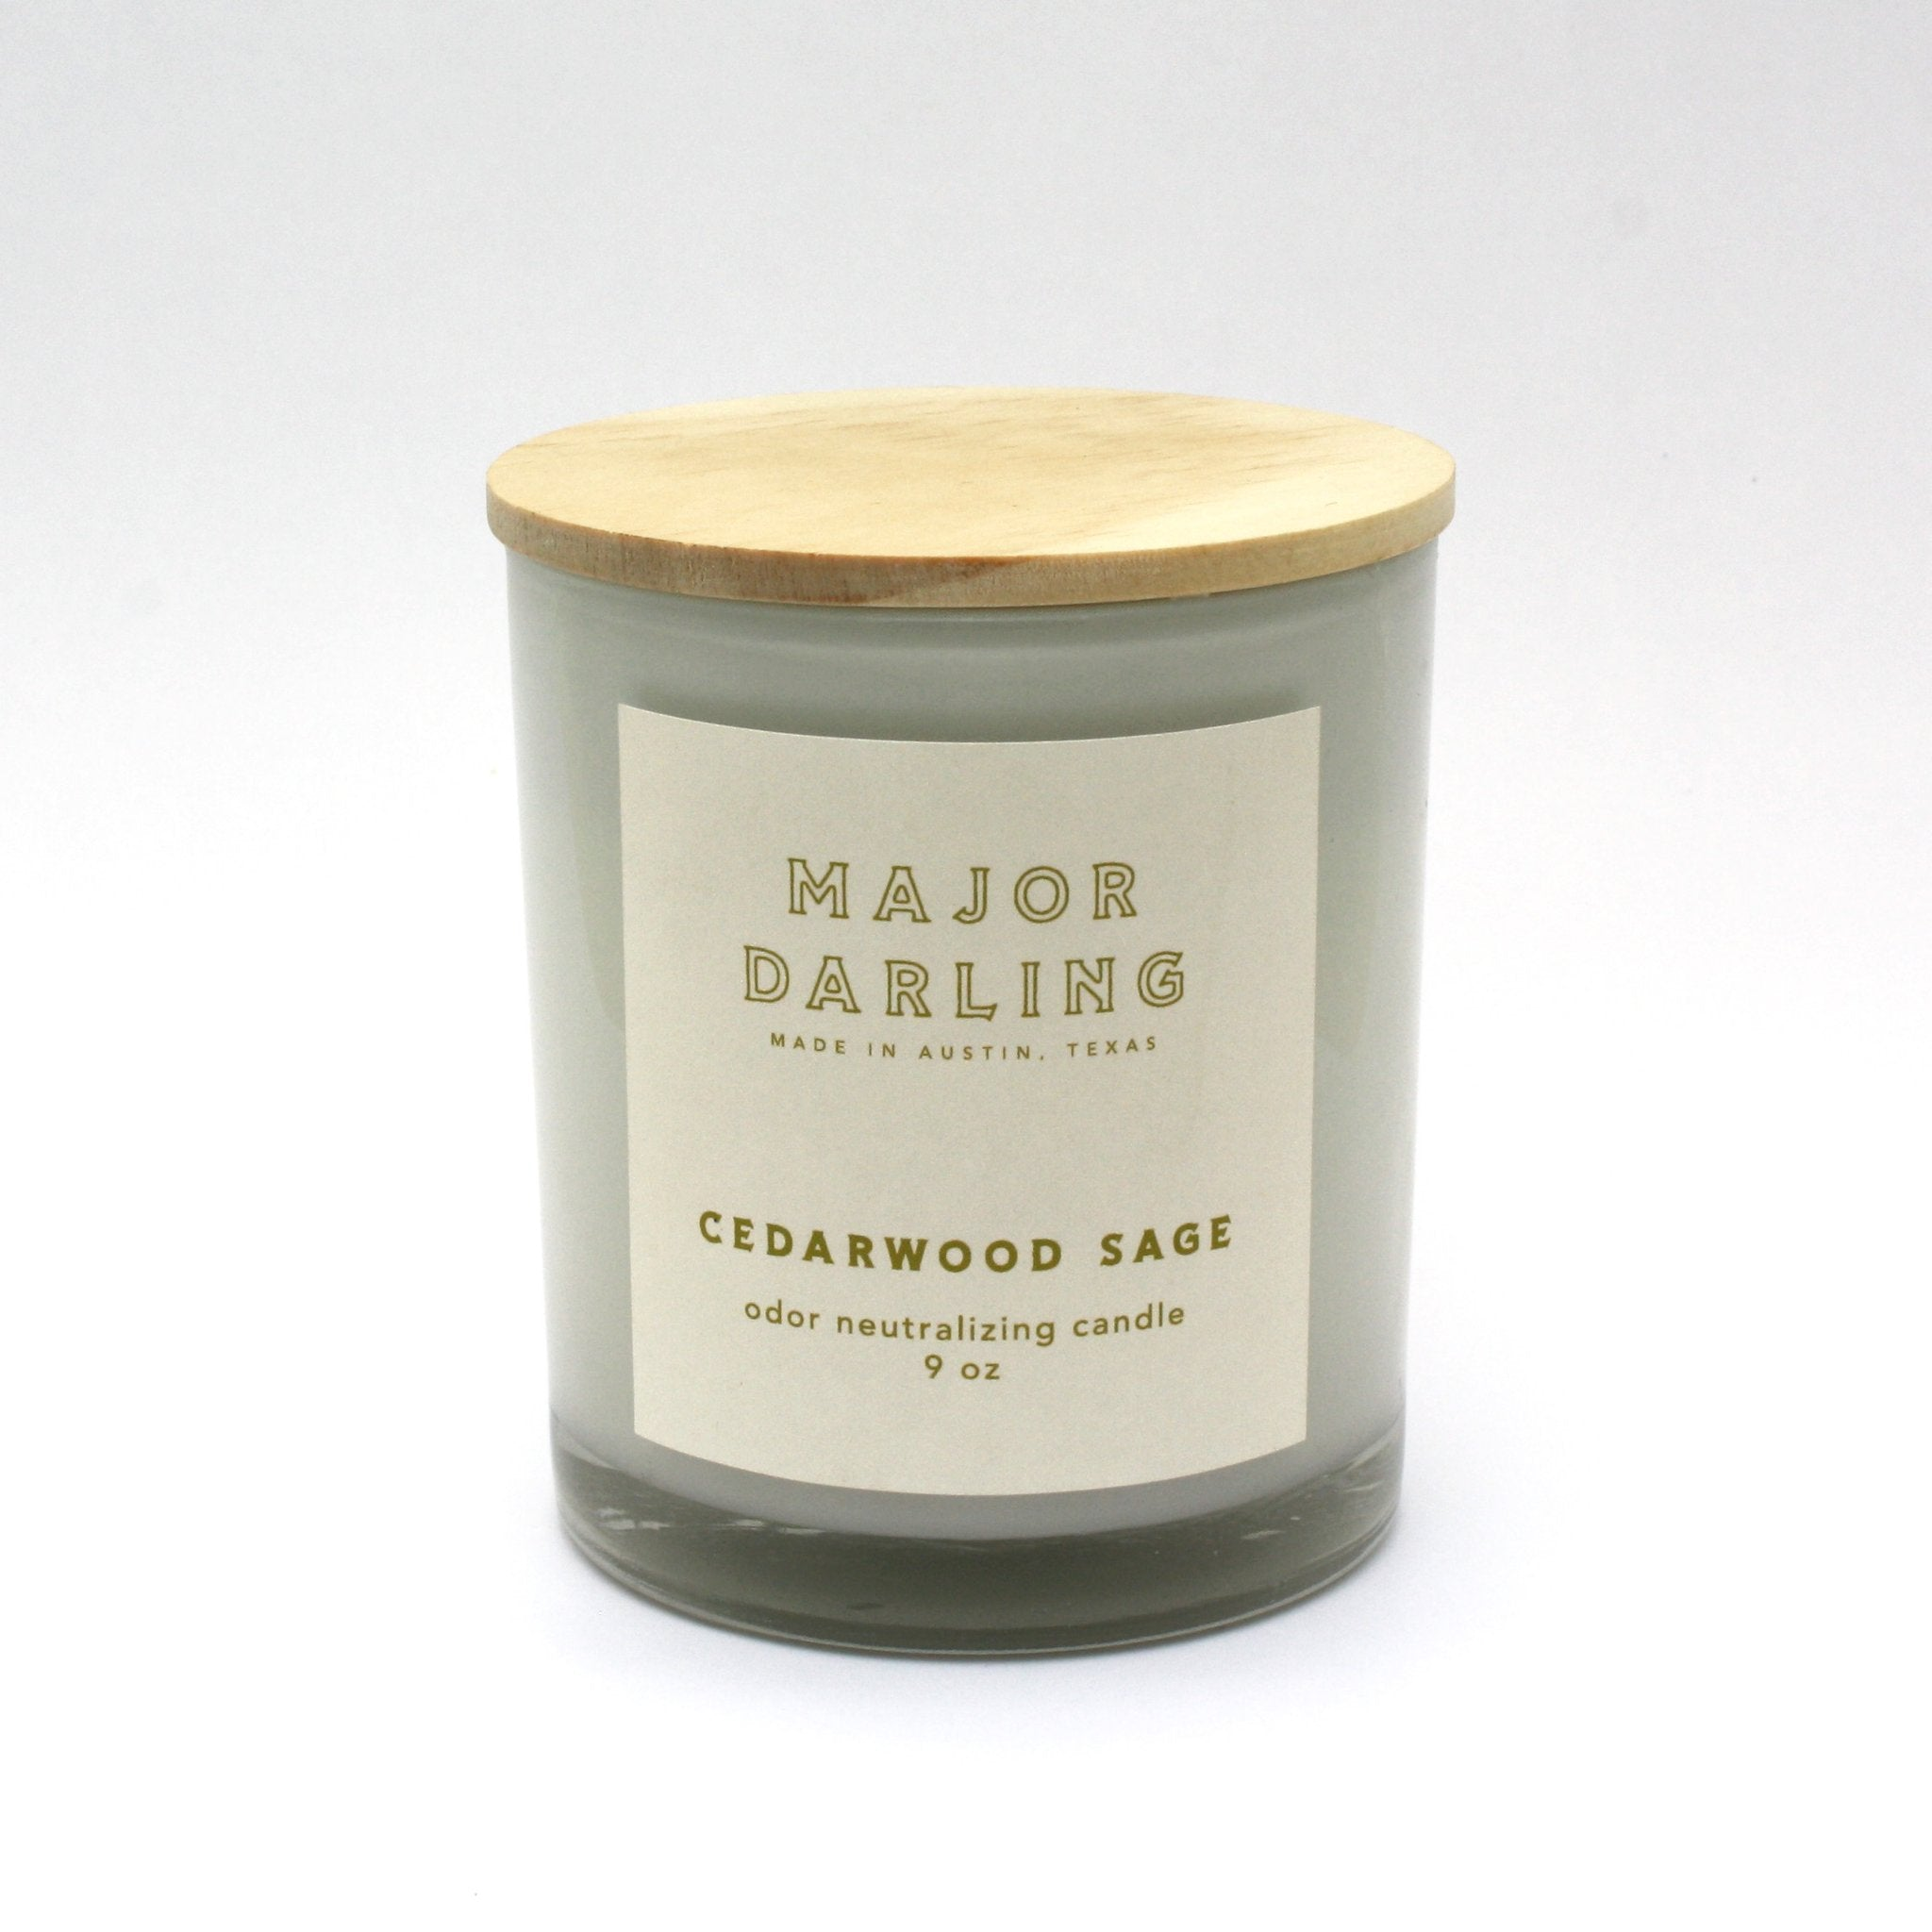 Odor Neutralizing Candle - Cedarwood Sage